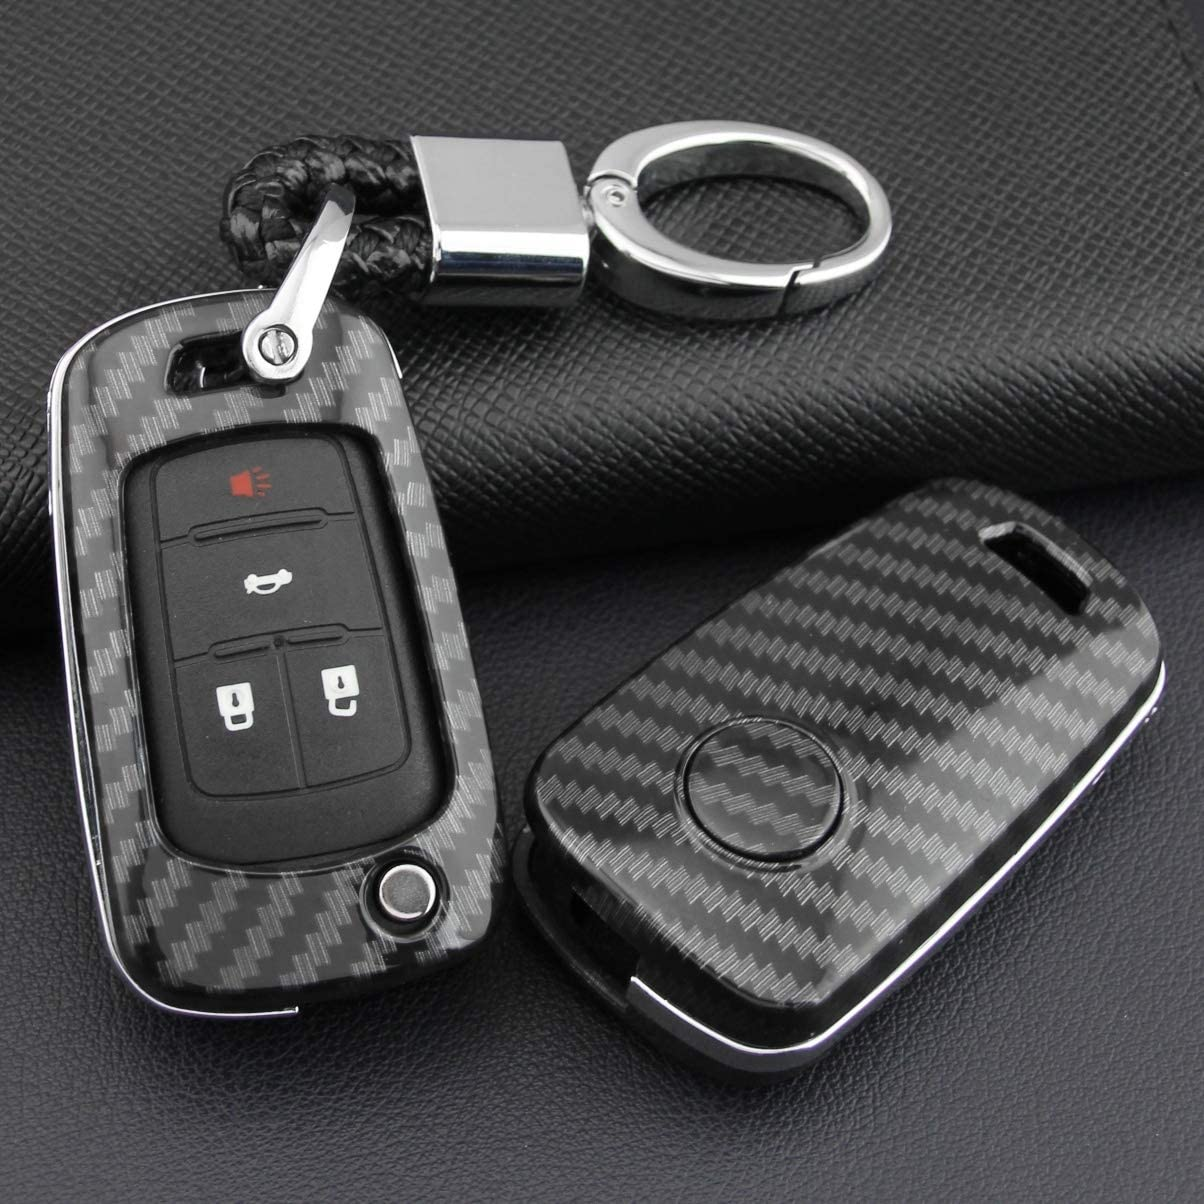 Shell With Keychain ABS Carbon Fibre Car Key Case Car Remote Shell Cover Fit For Chevrolet Cruze//Camaro//Volt Buick LaCrosse//Regal Protector Auto Keychain Car Accessories Decoration